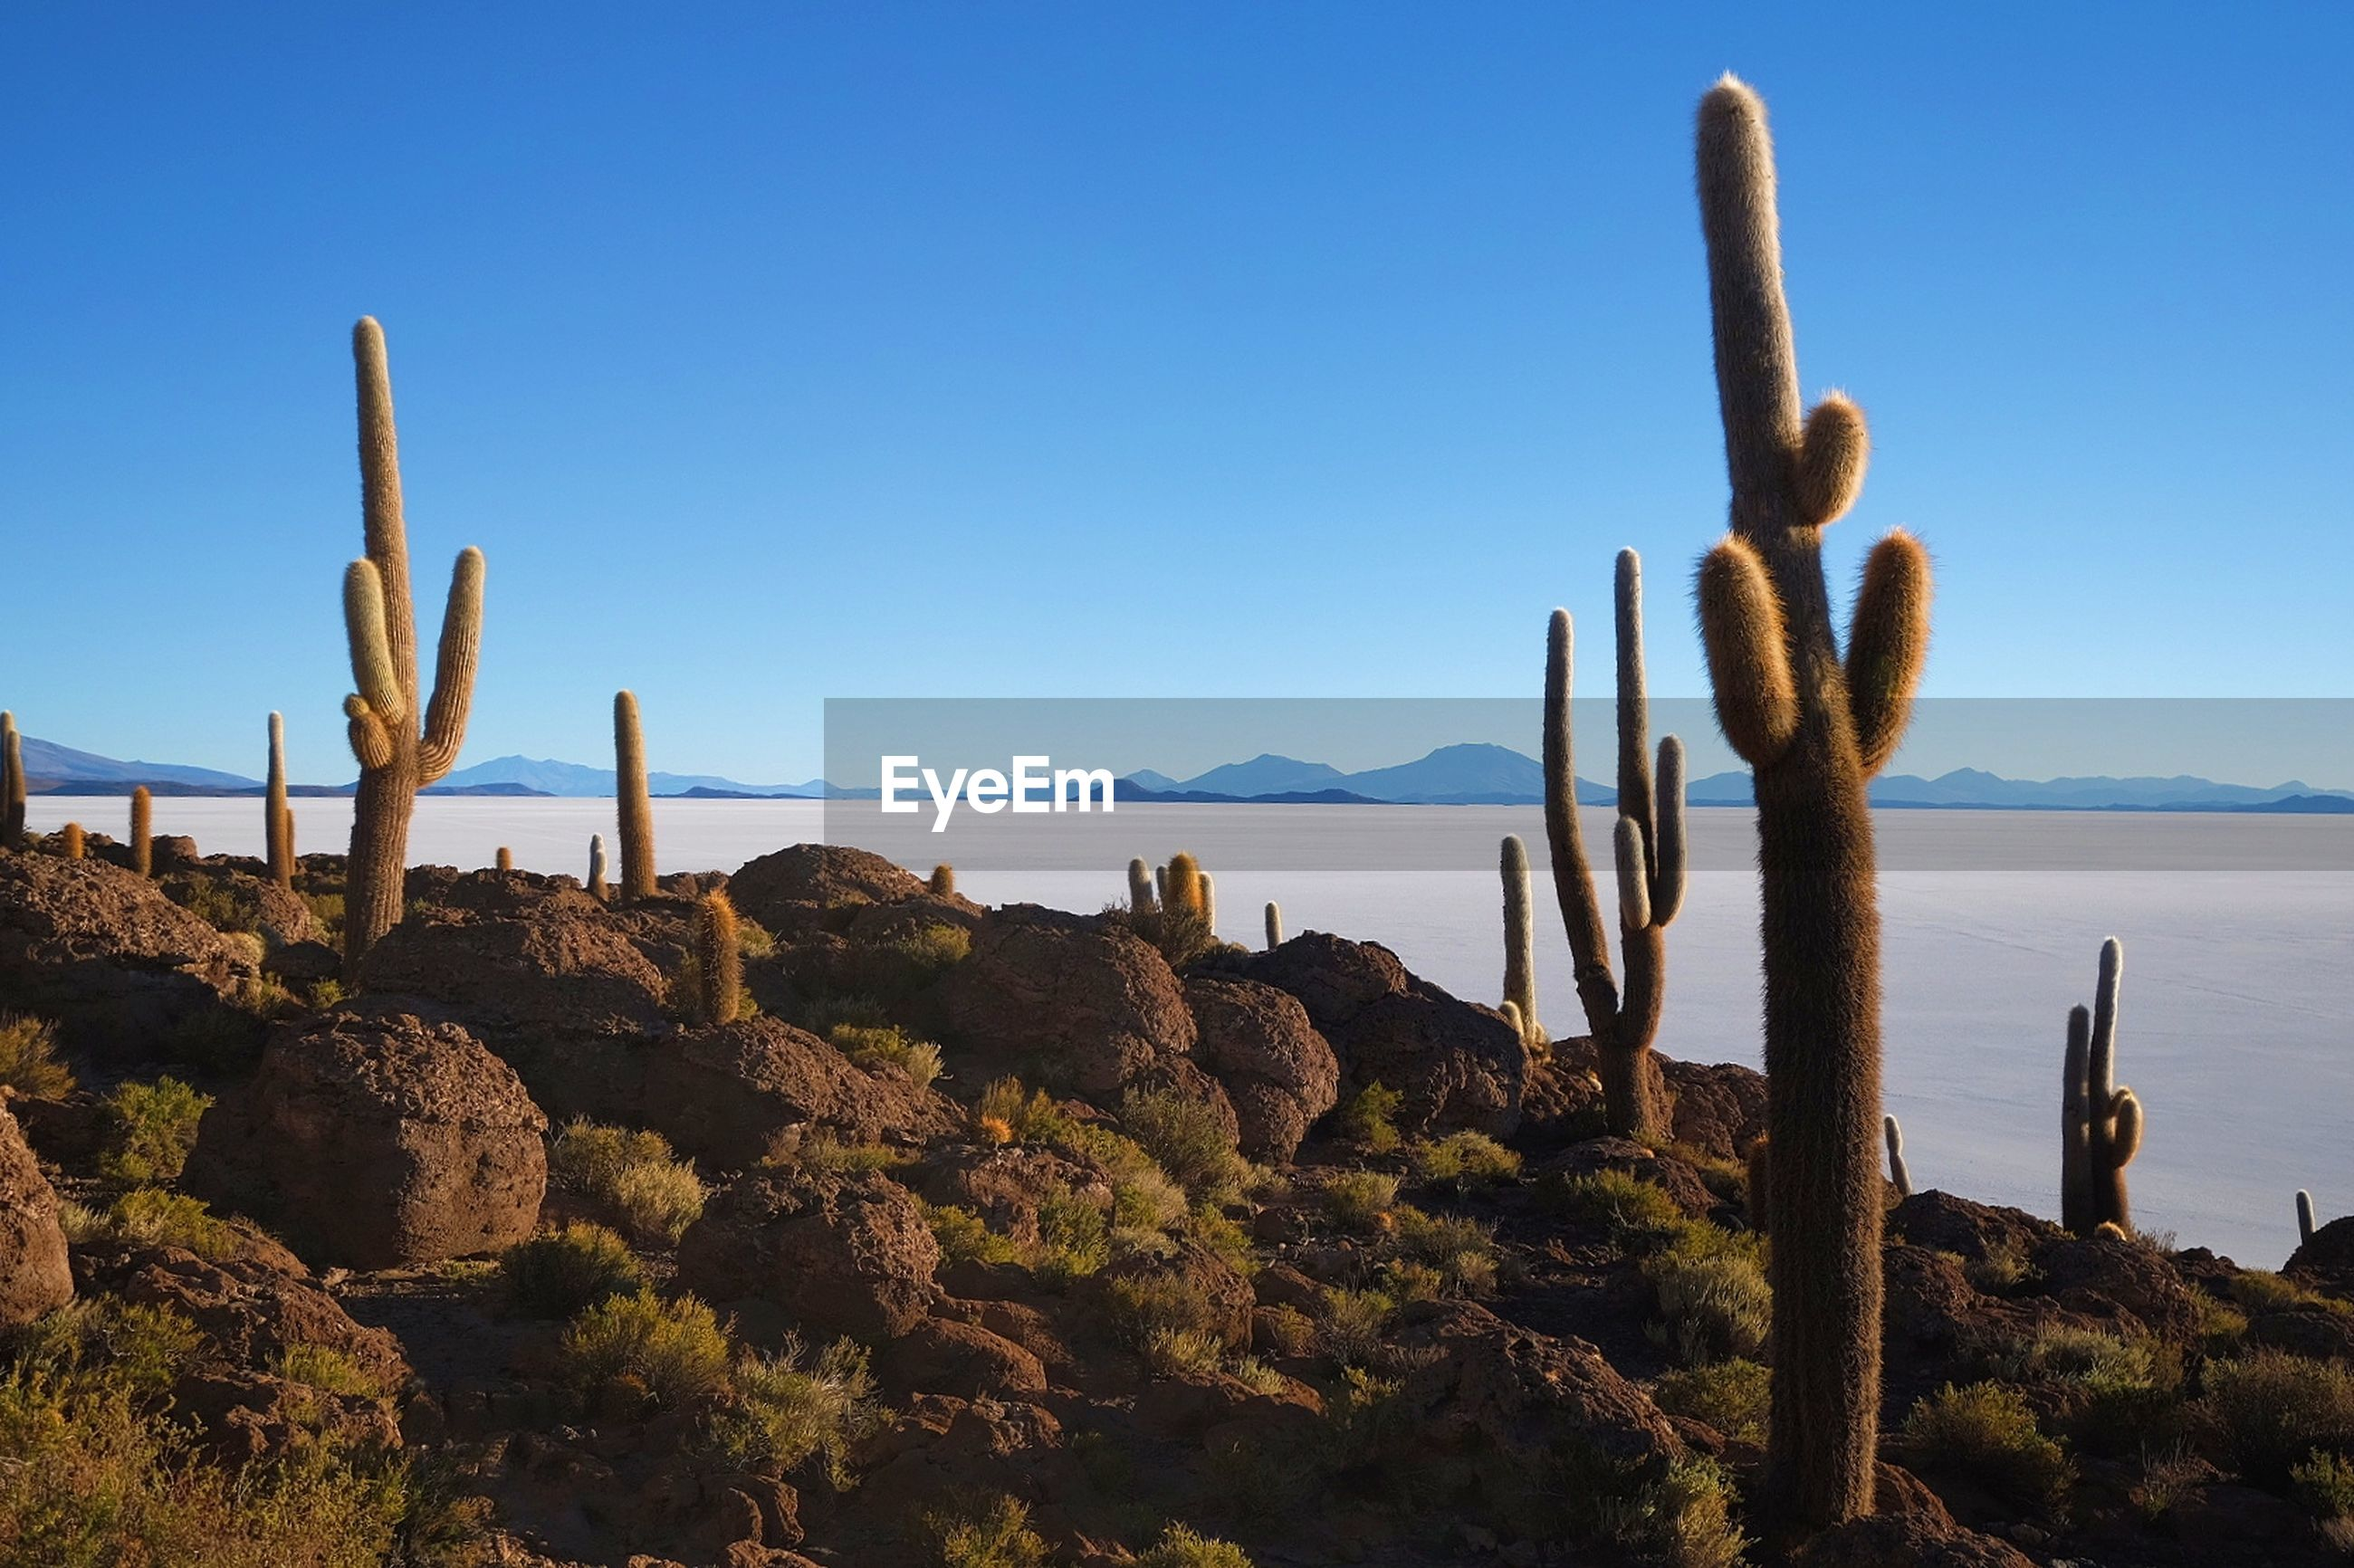 cactus, nature, rock - object, saguaro cactus, beauty in nature, day, scenics, no people, tranquil scene, outdoors, growth, sea, tranquility, blue, plant, sky, water, close-up